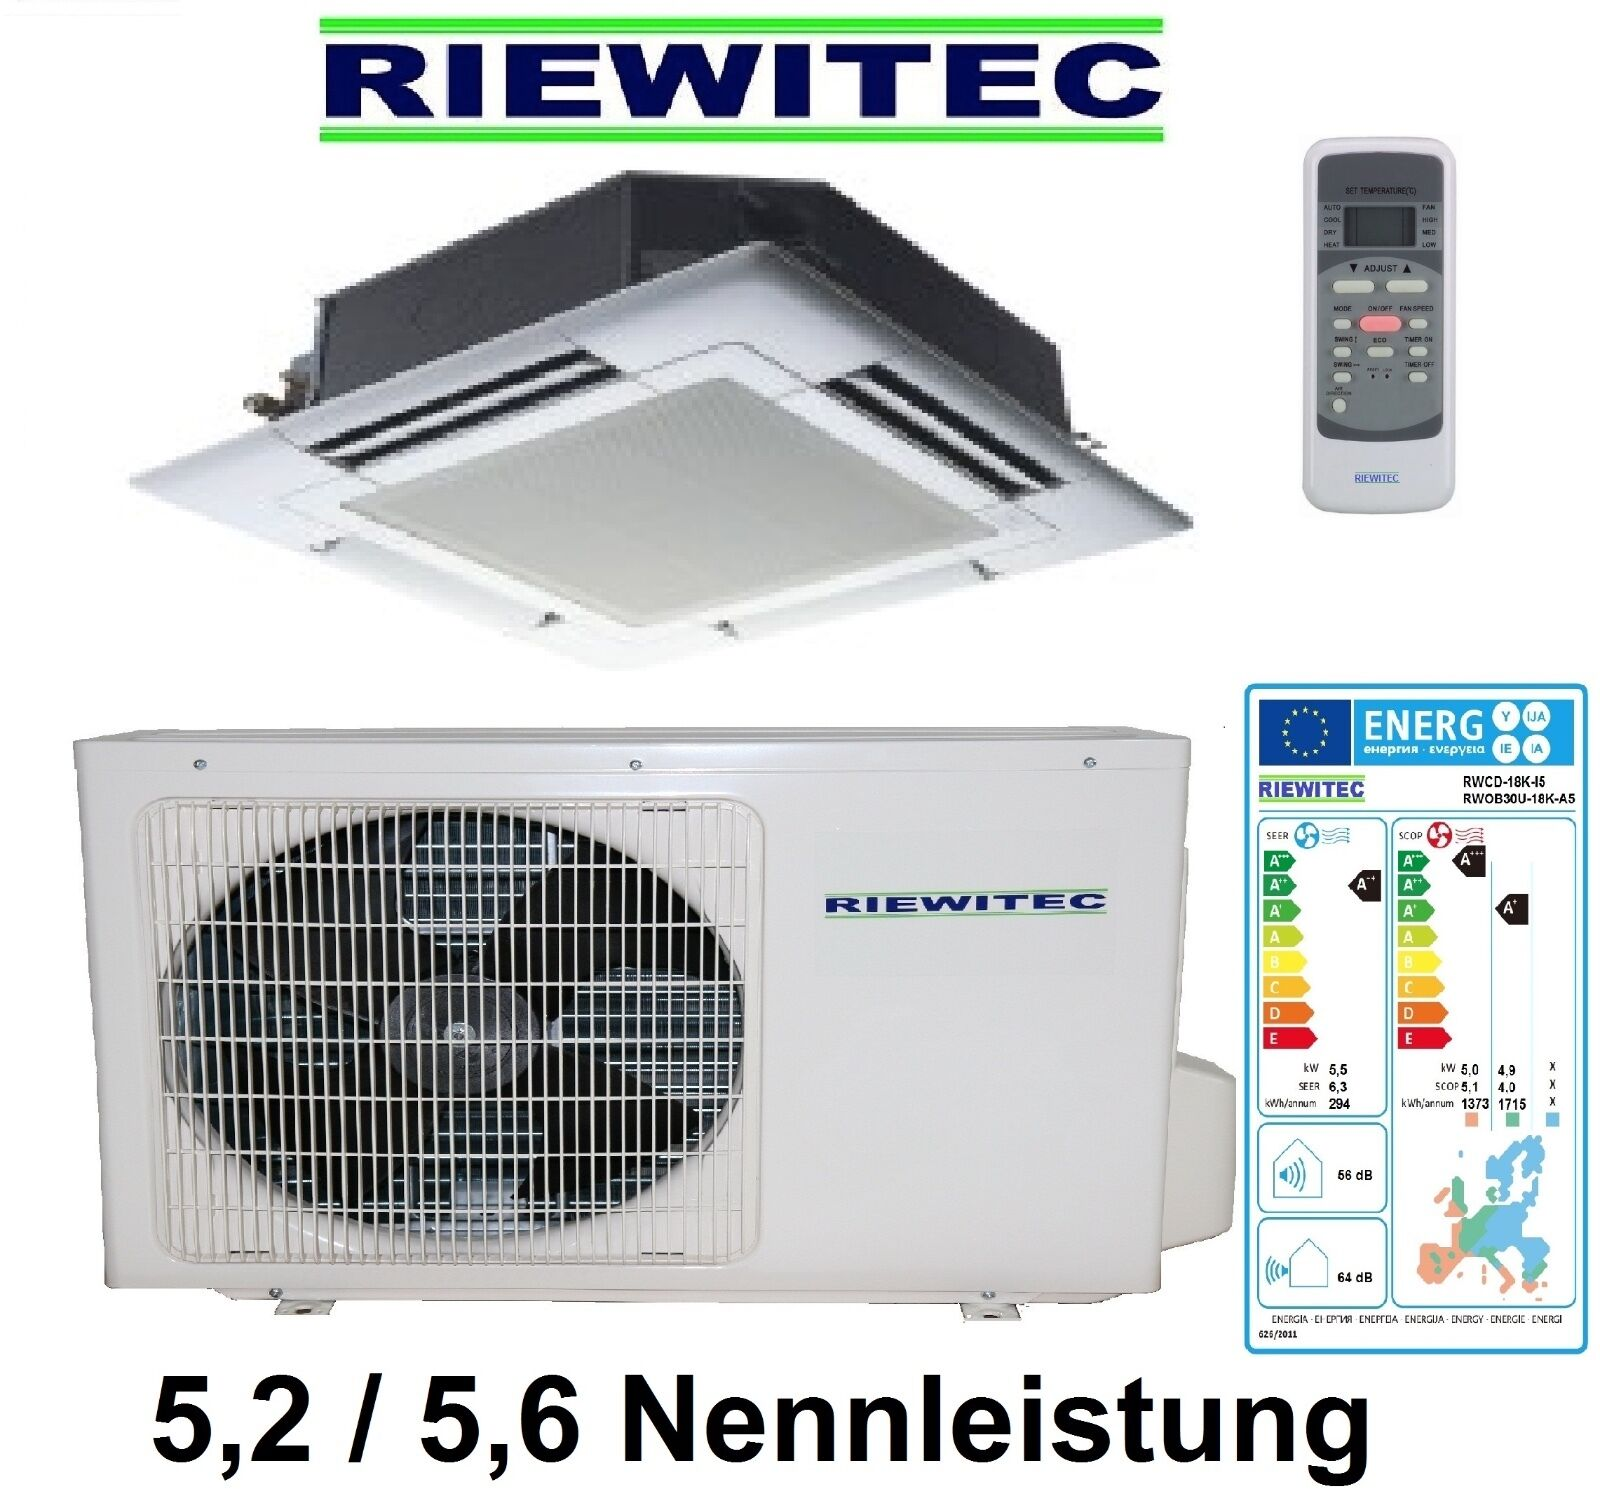 inverter deckenkassette klimaanlage riewitec 5 2 5 6 kw nennleist a a eur 936 00. Black Bedroom Furniture Sets. Home Design Ideas